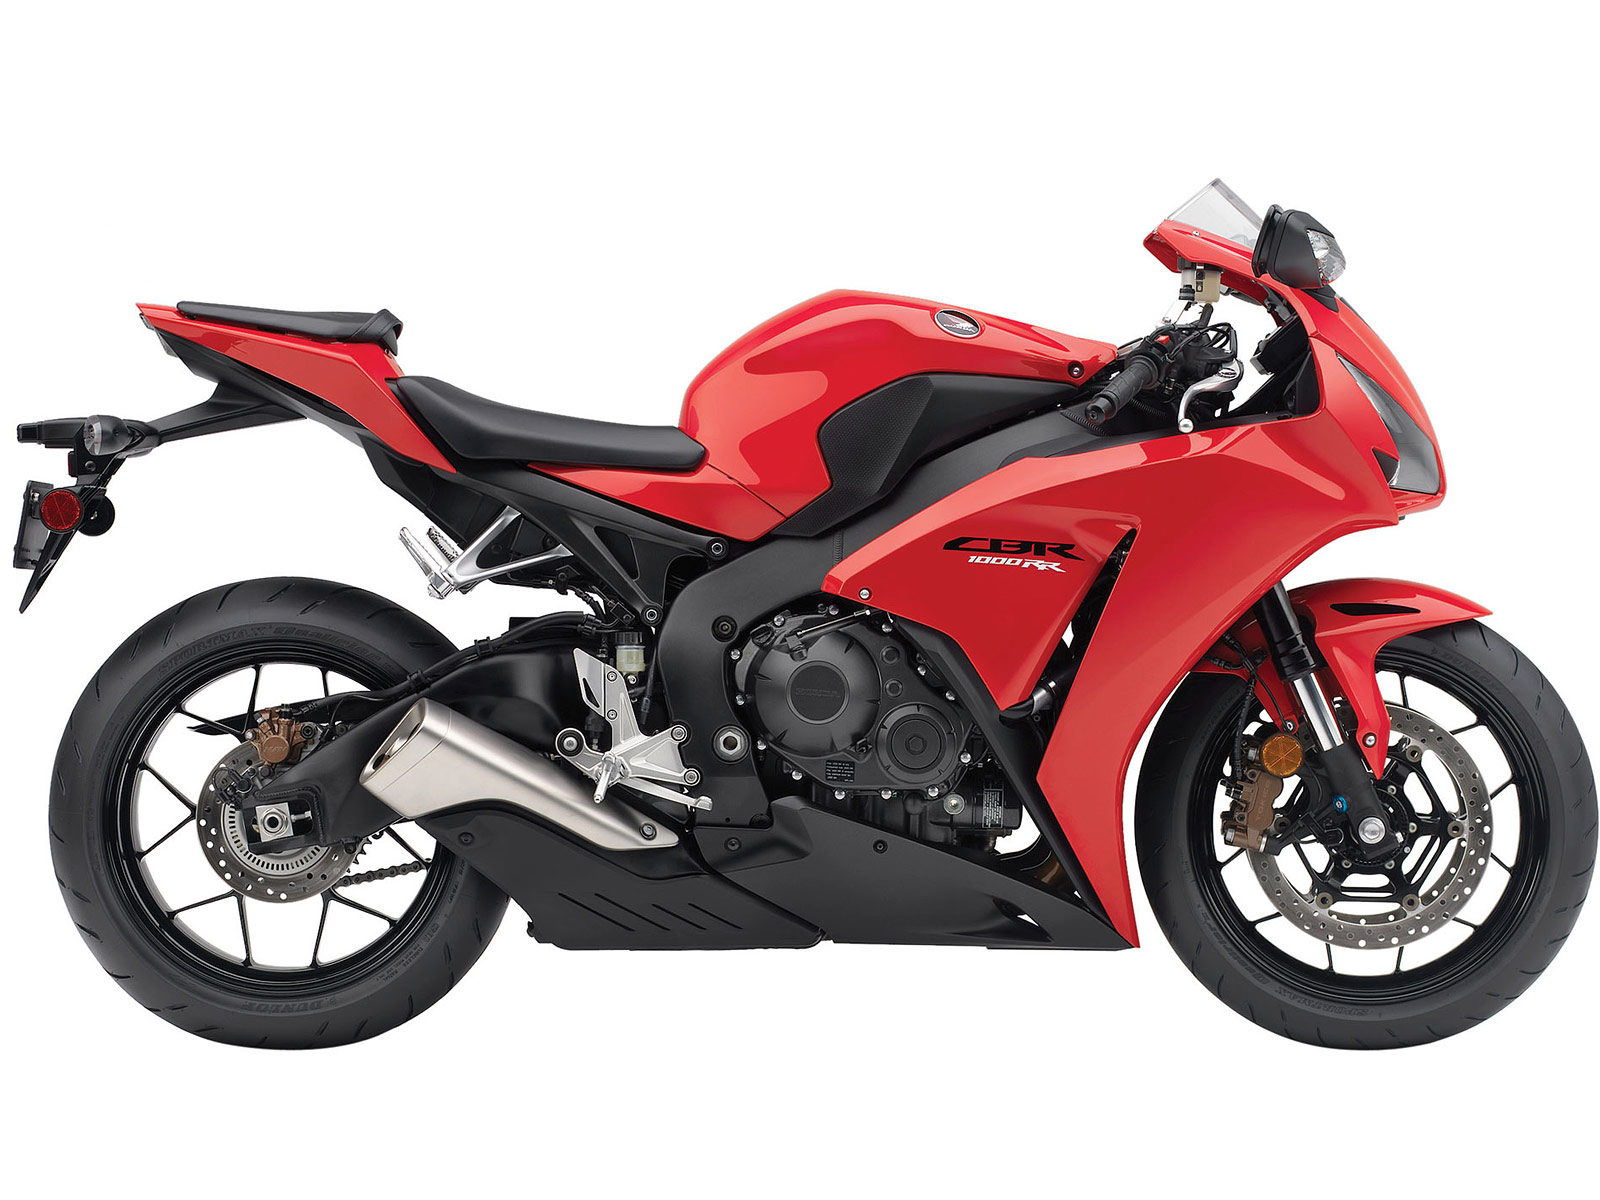 2012 HONDA CBR1000RR motorcycle wallpaper specifications 1600x1200